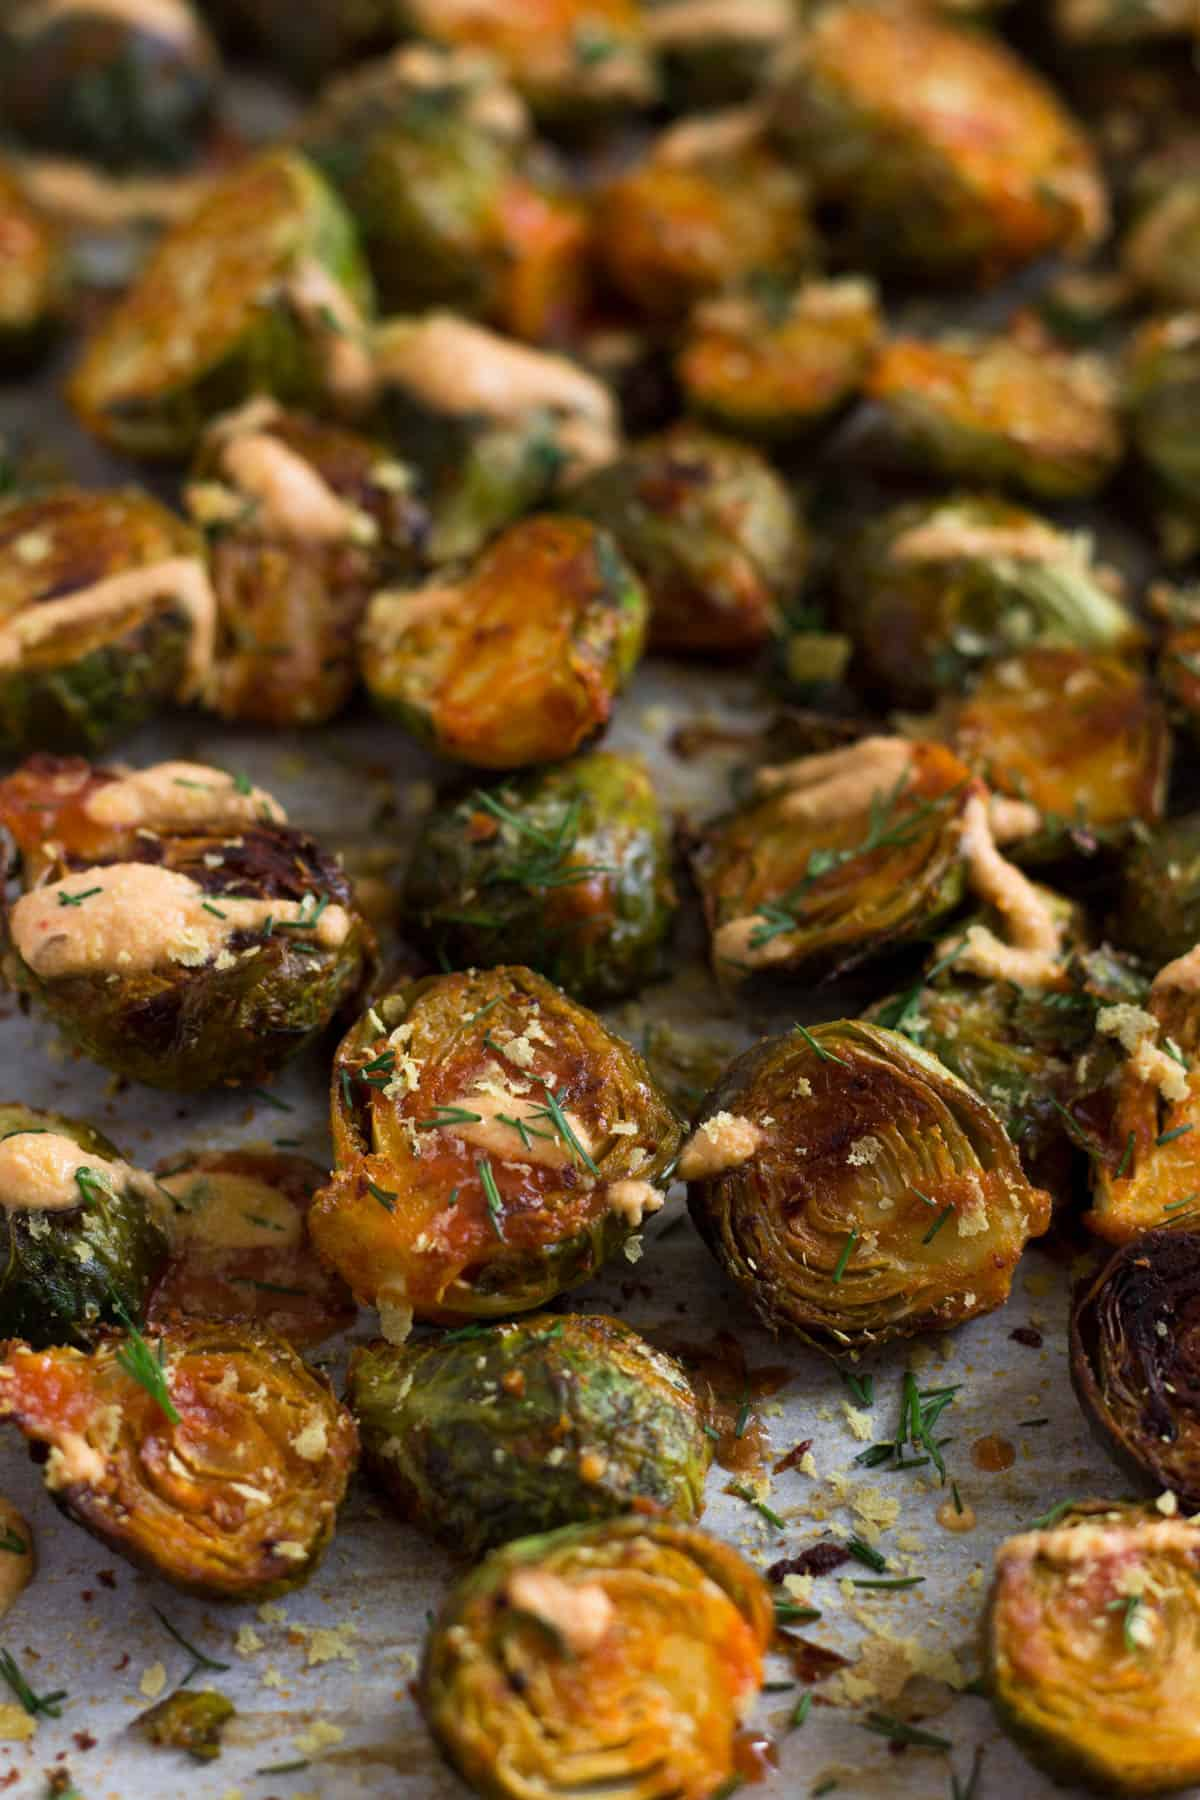 Pan of roasted buffalo brussel sprouts topped with nutritional yeast, buffalo sauce, vegan cheesy buffalo sauce, and nutritional yeast.